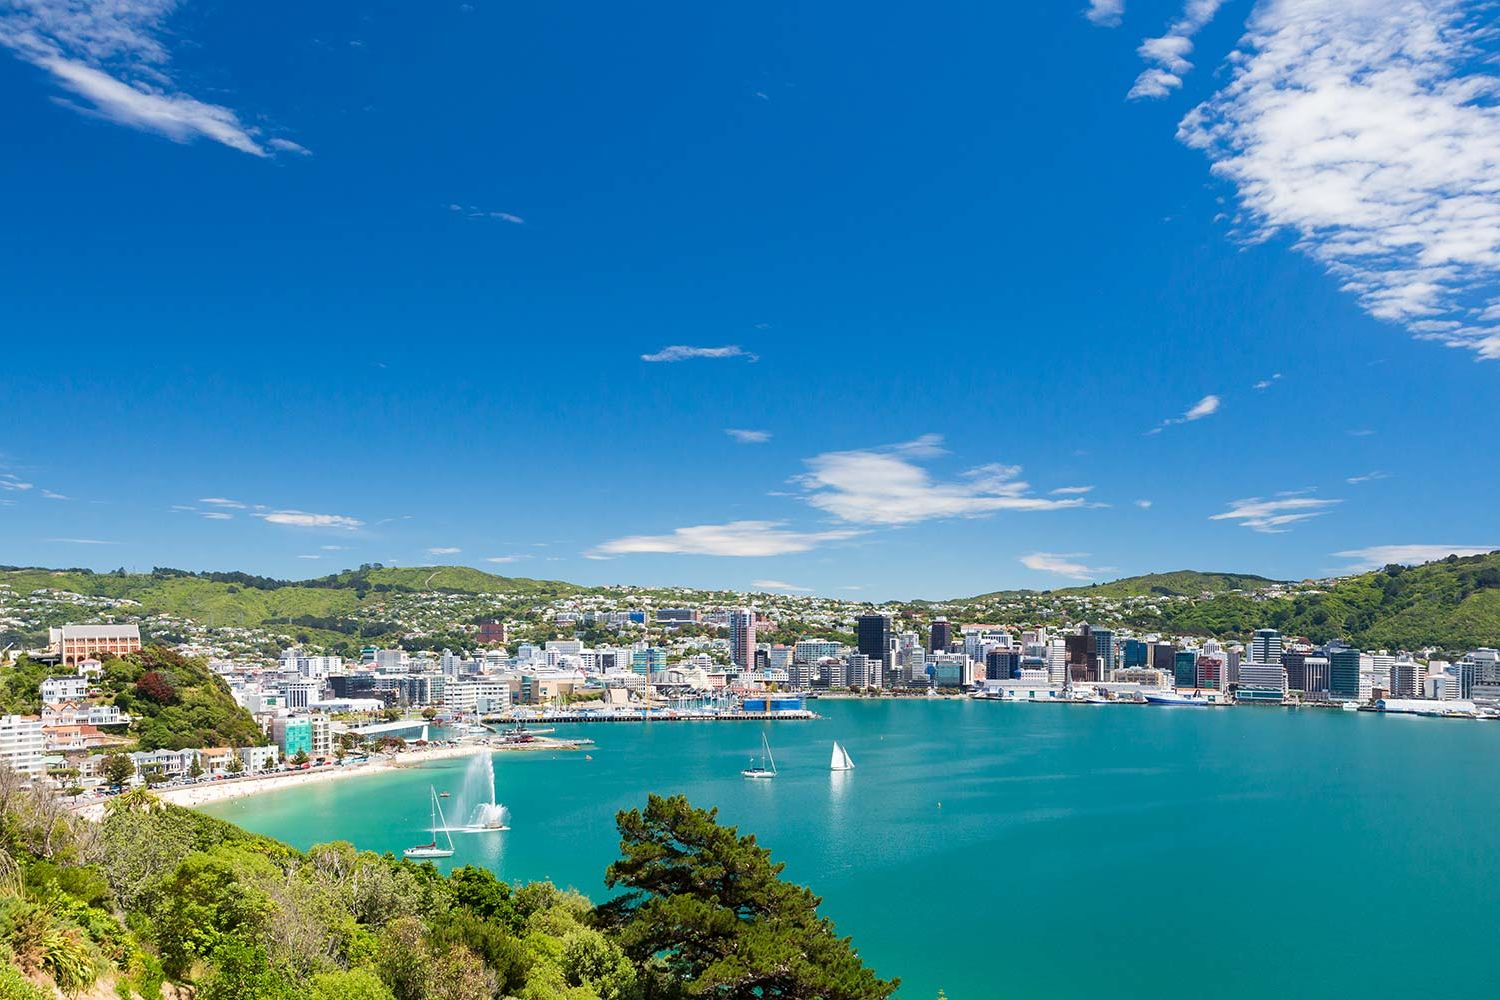 New Zealand Will Give You a Free Trip If You Agree to a Job Interview